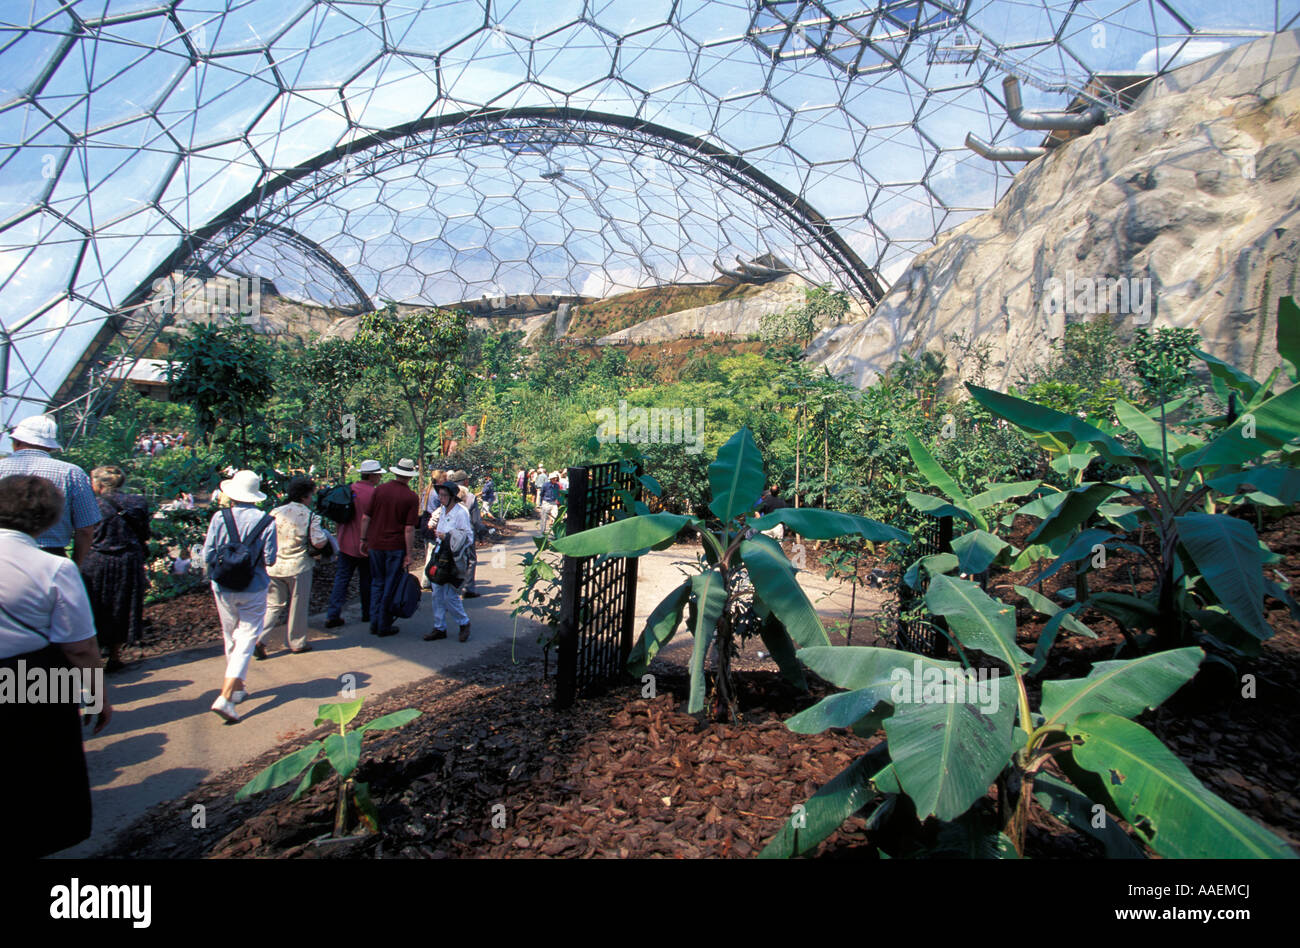 The Eden Project St Austell Cornwall England United Kingdom Stock Photo